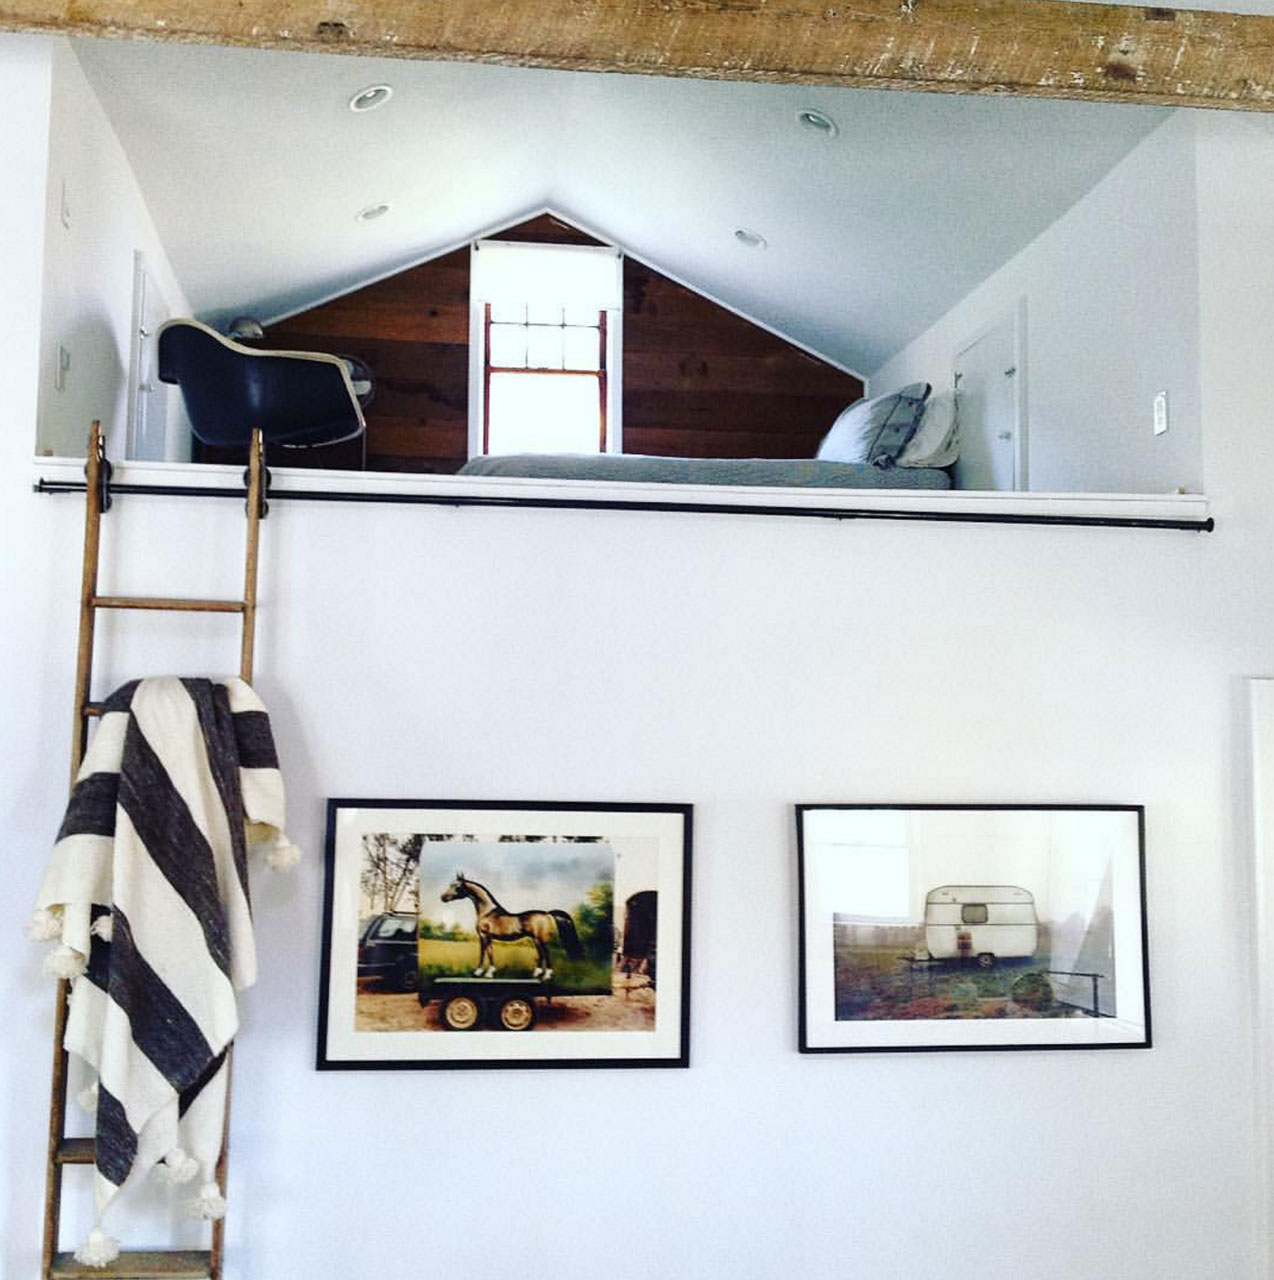 Image of two color photography prints on a wall - both by photographer, Jason Florio - one with a horse box, the other with a caravan , in the UK